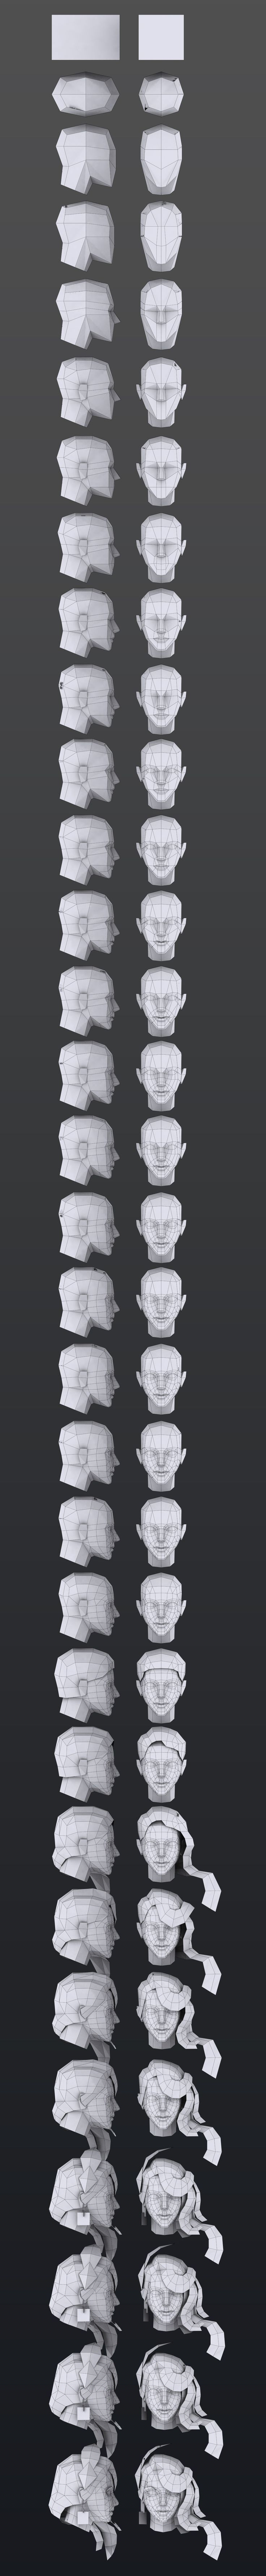 The process of creating a 3D head from basic primitives to detail! Extremely…